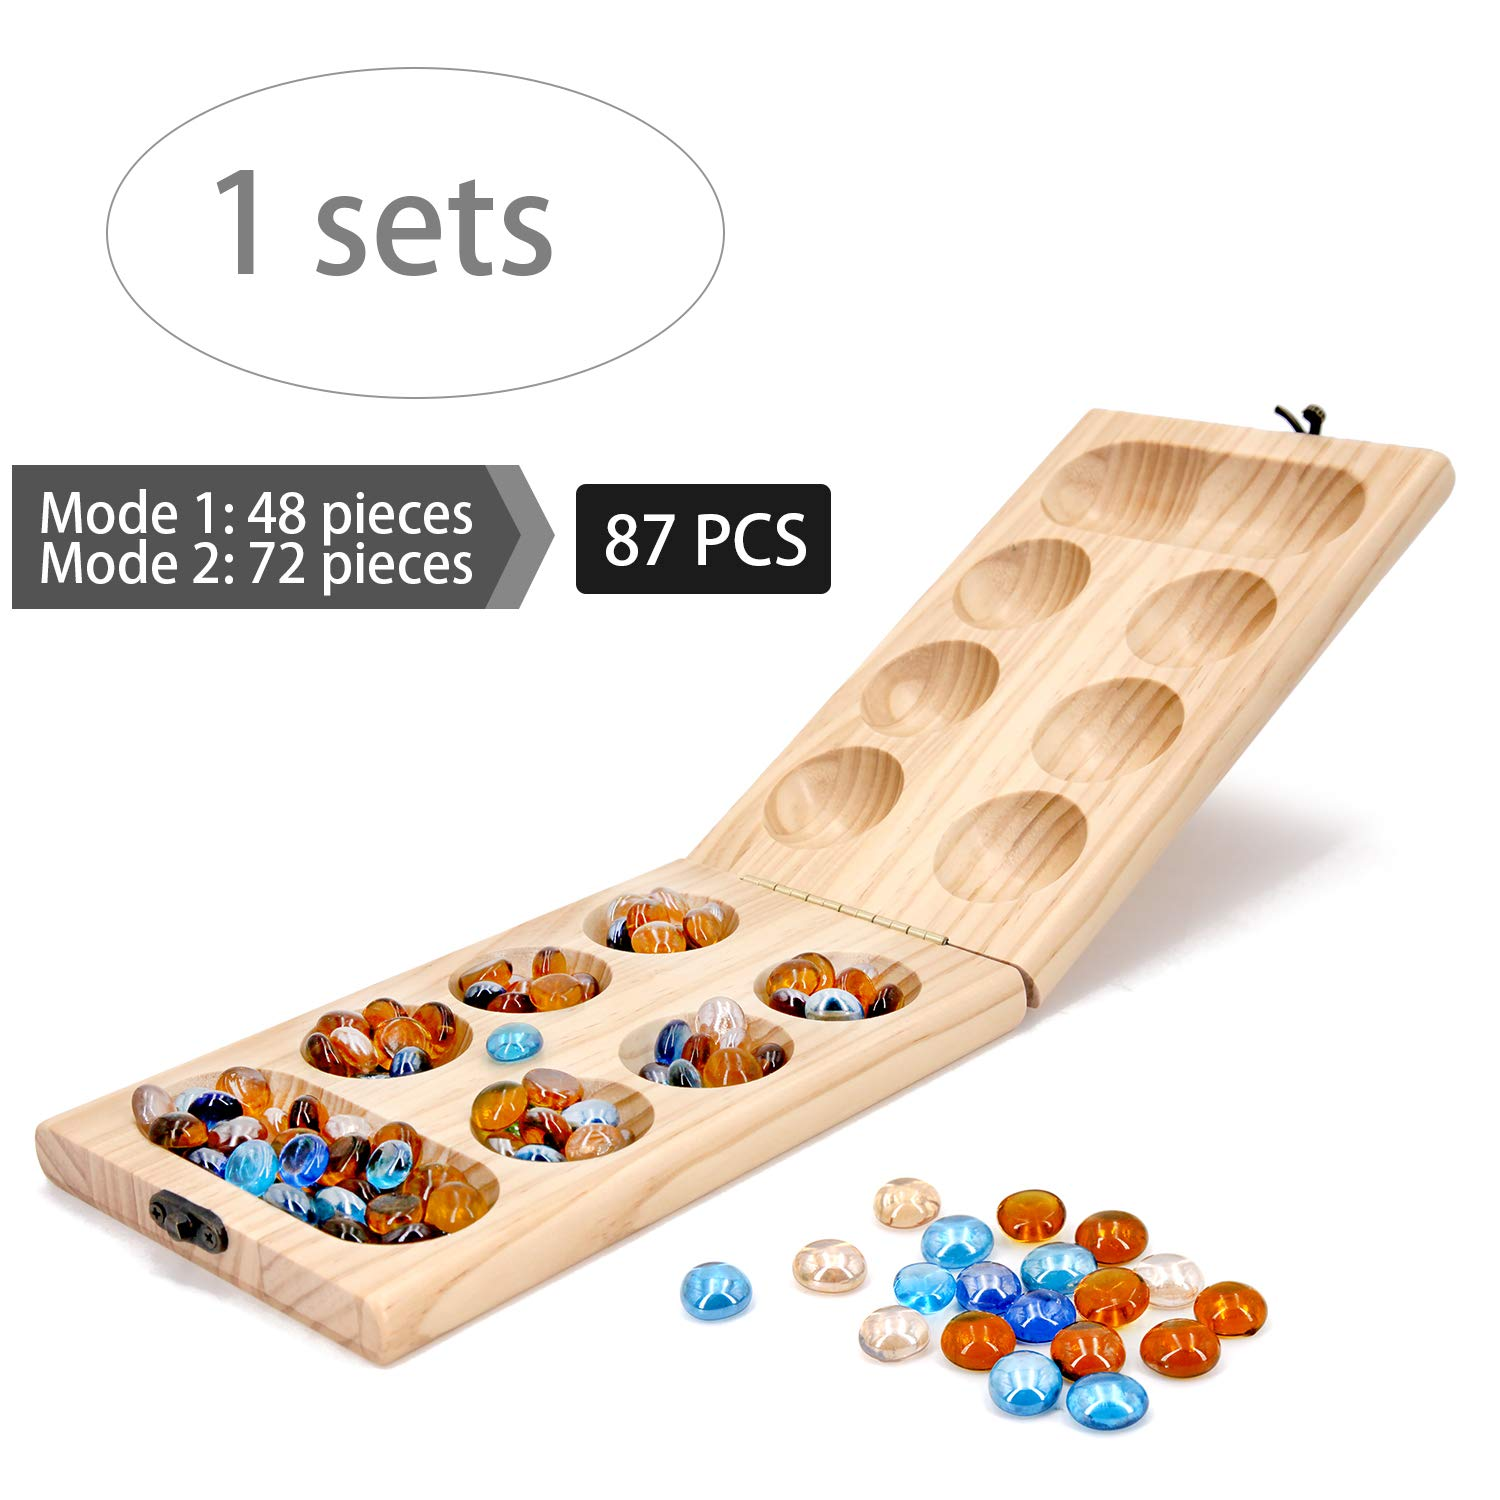 Mancala Board Game With Stones Wood Folding Mancala Board Game For Kids Africa Mancala Stones Glass Bead Games For Adults Large Solid Wood Board